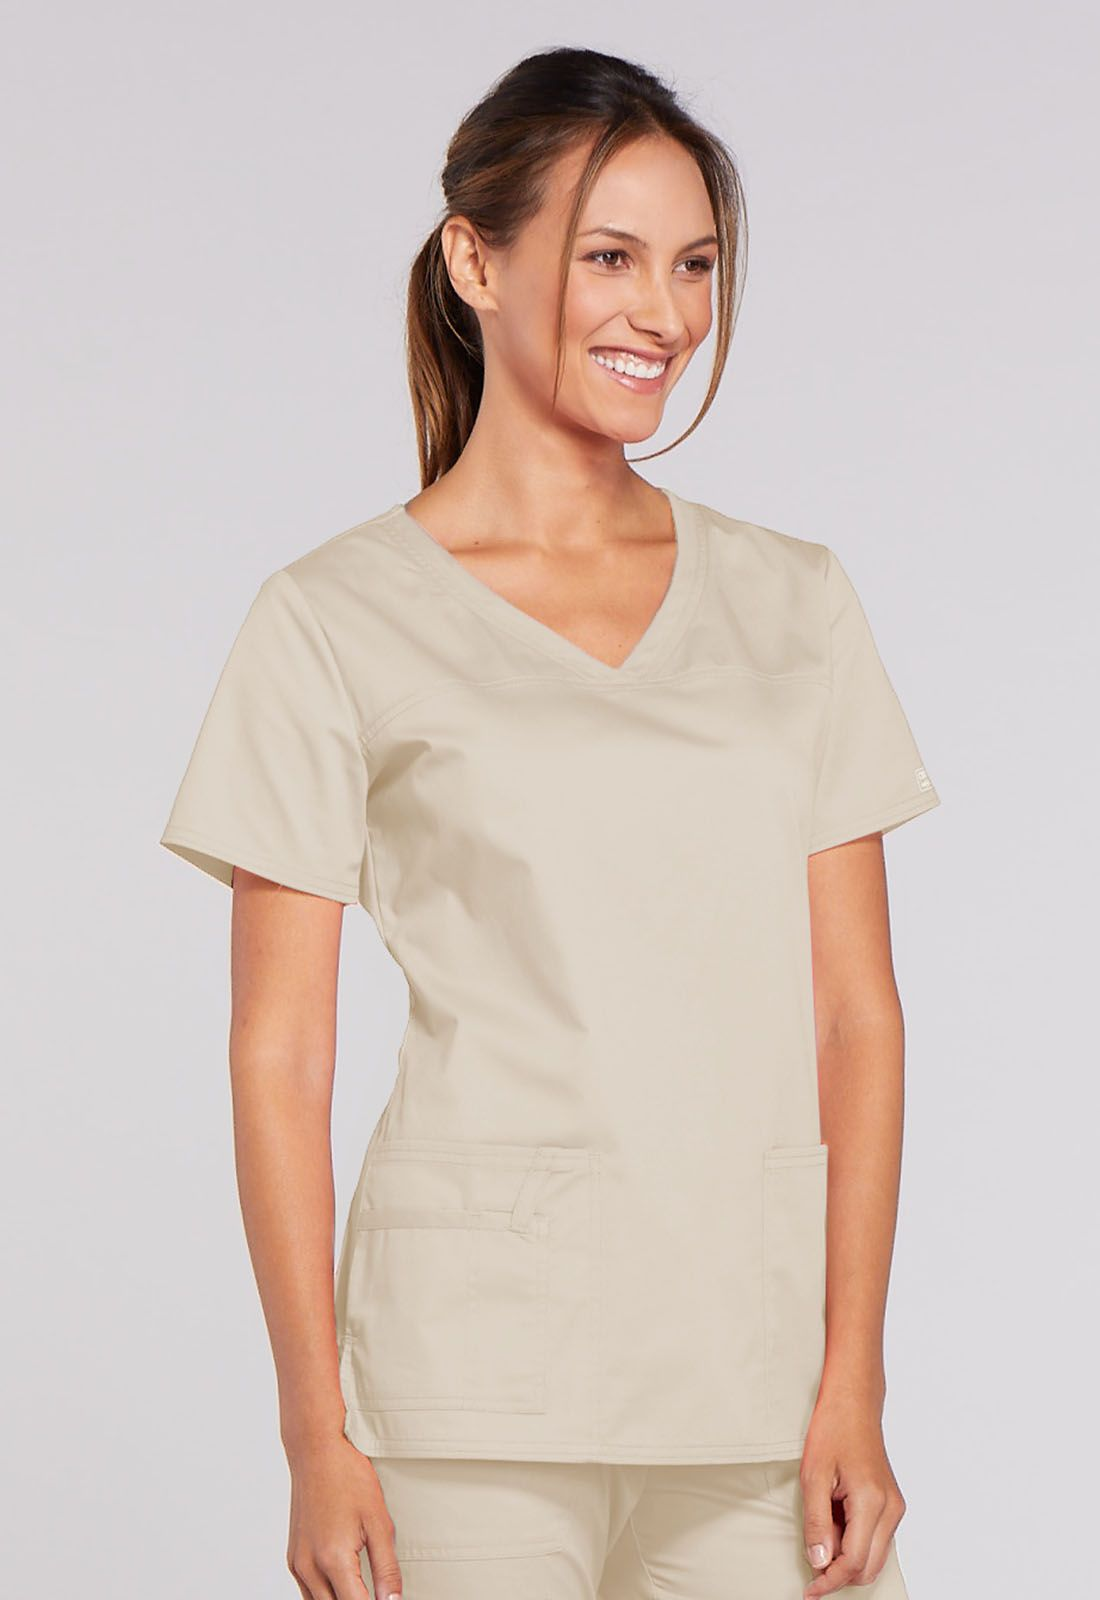 https://medcloth.by/images/stories/virtuemart/product/4727-khaki-3.jpg